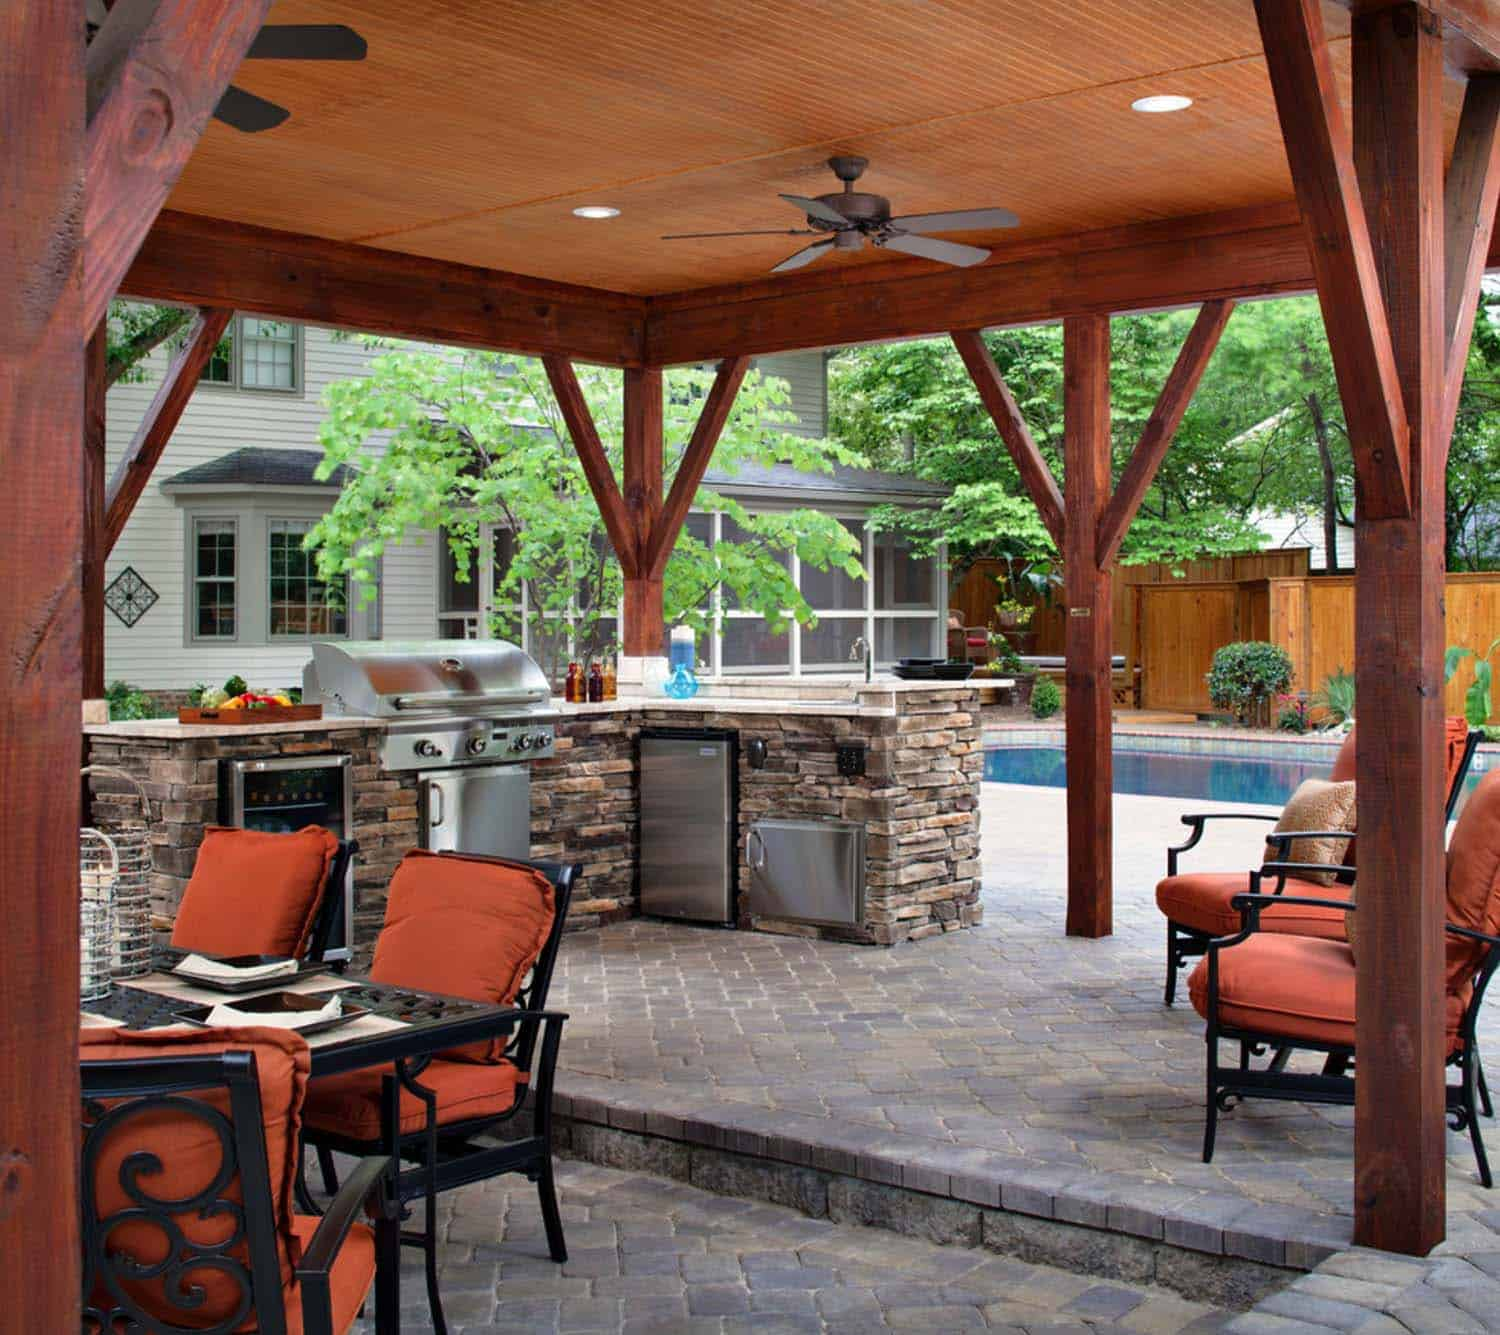 20 spectacular outdoor kitchens with bars for entertaining for Outdoor kitchen designs with pool